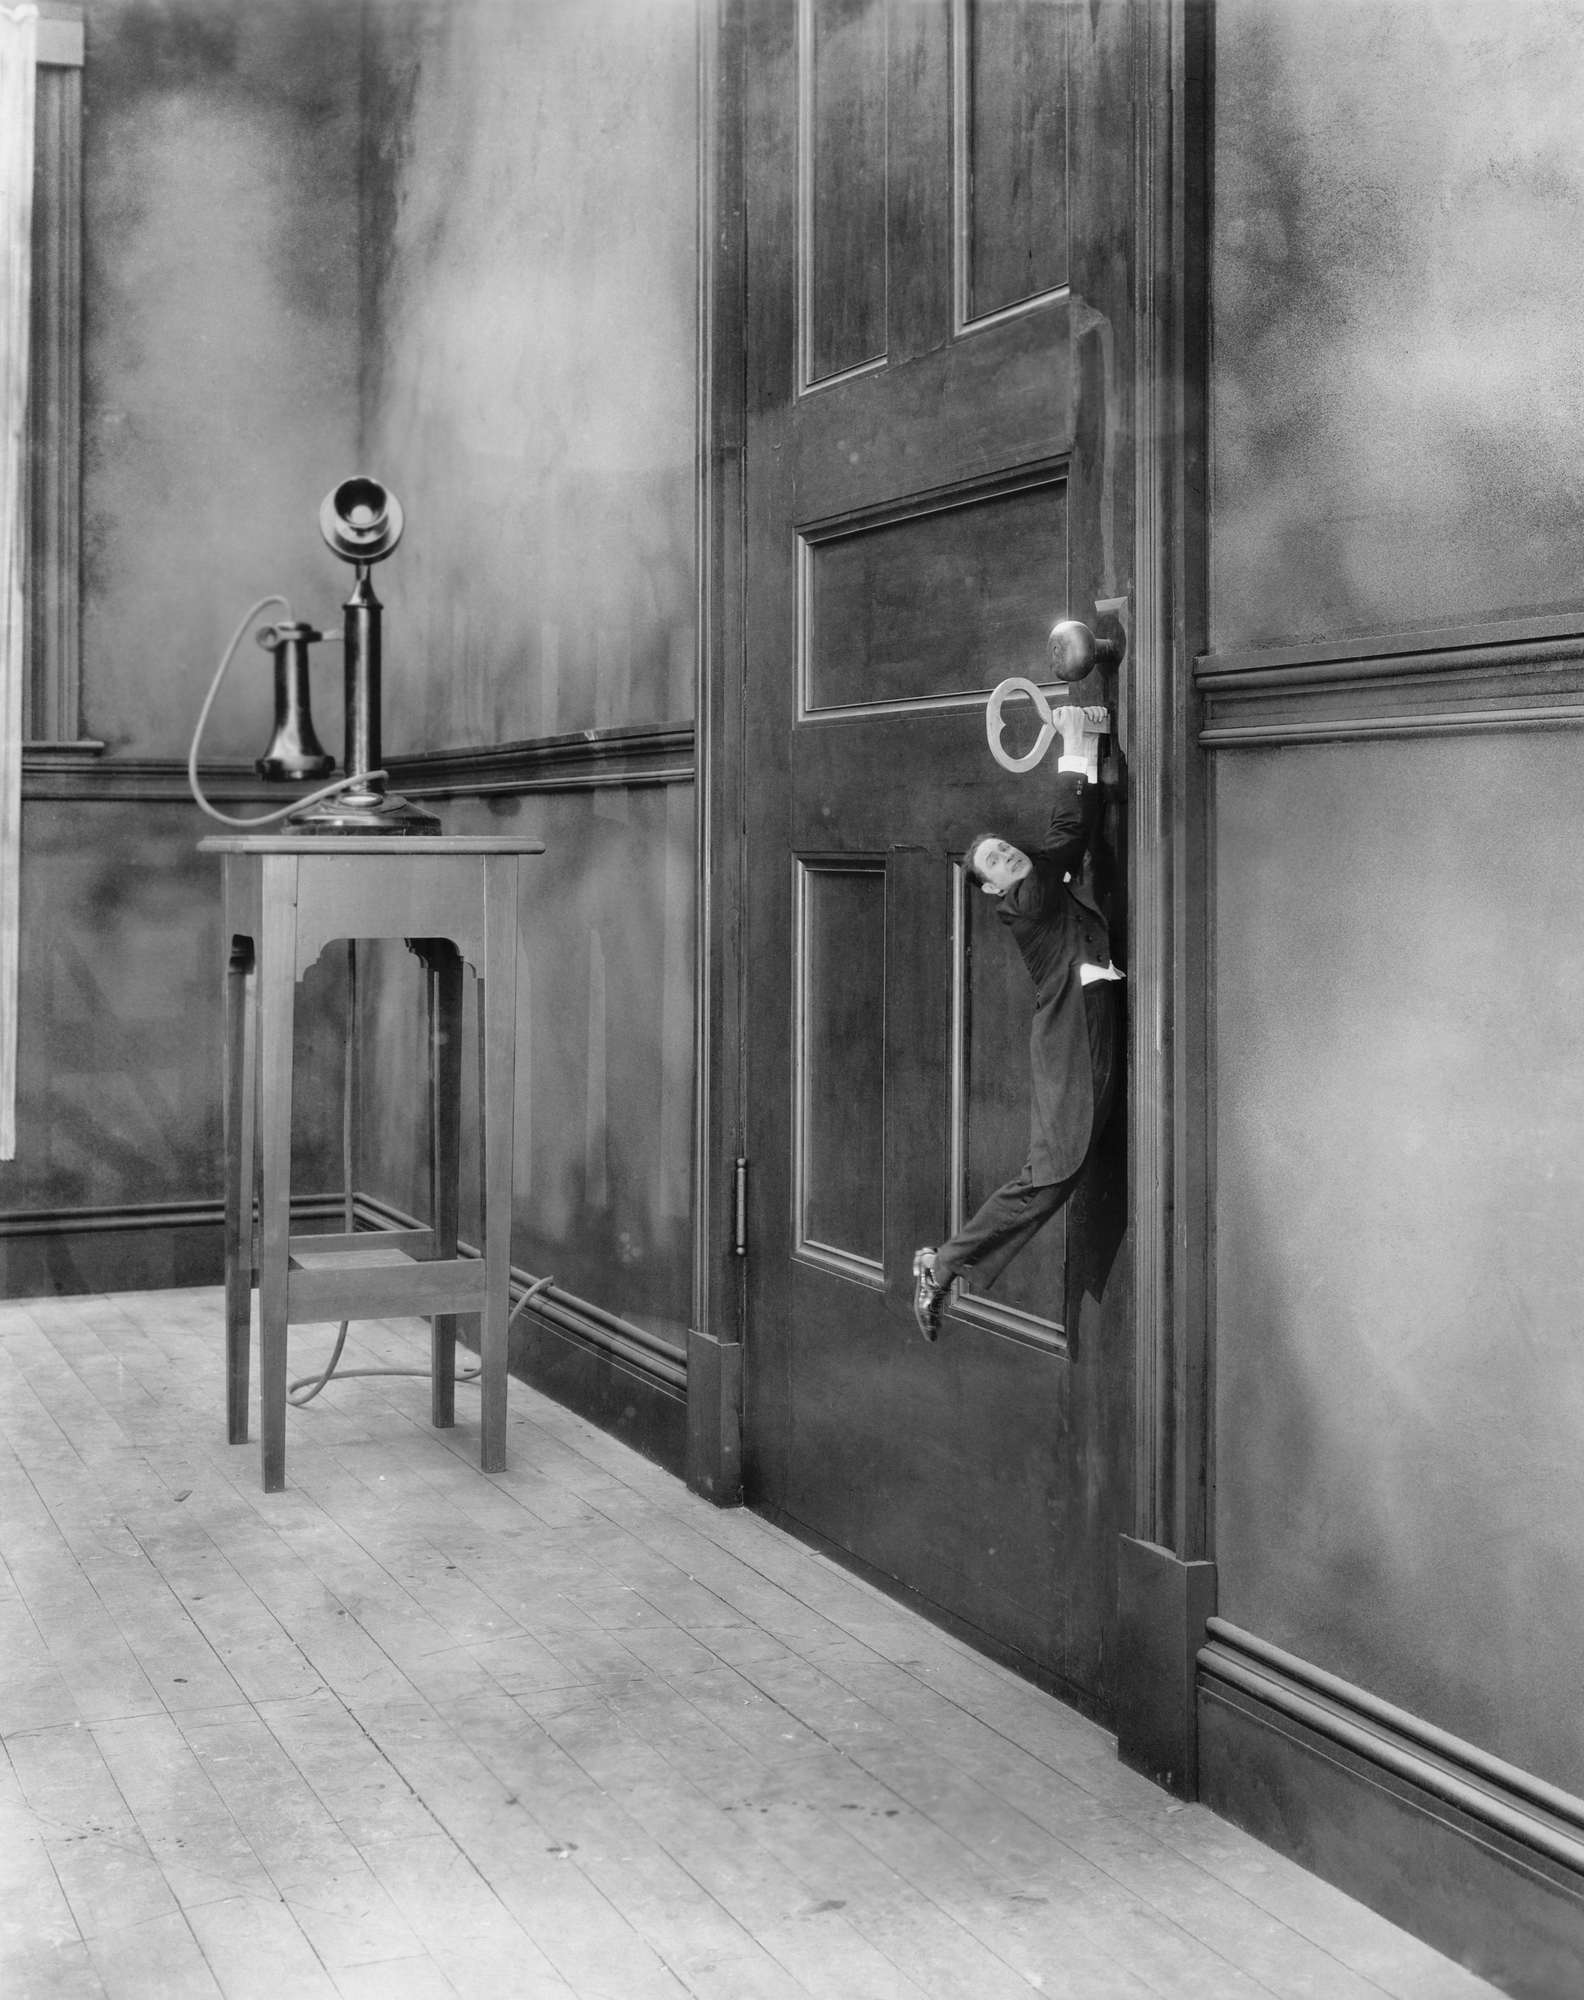 Black & White of tiny man hanging onto a key stuck in a locked door a la Alice in Wonderland